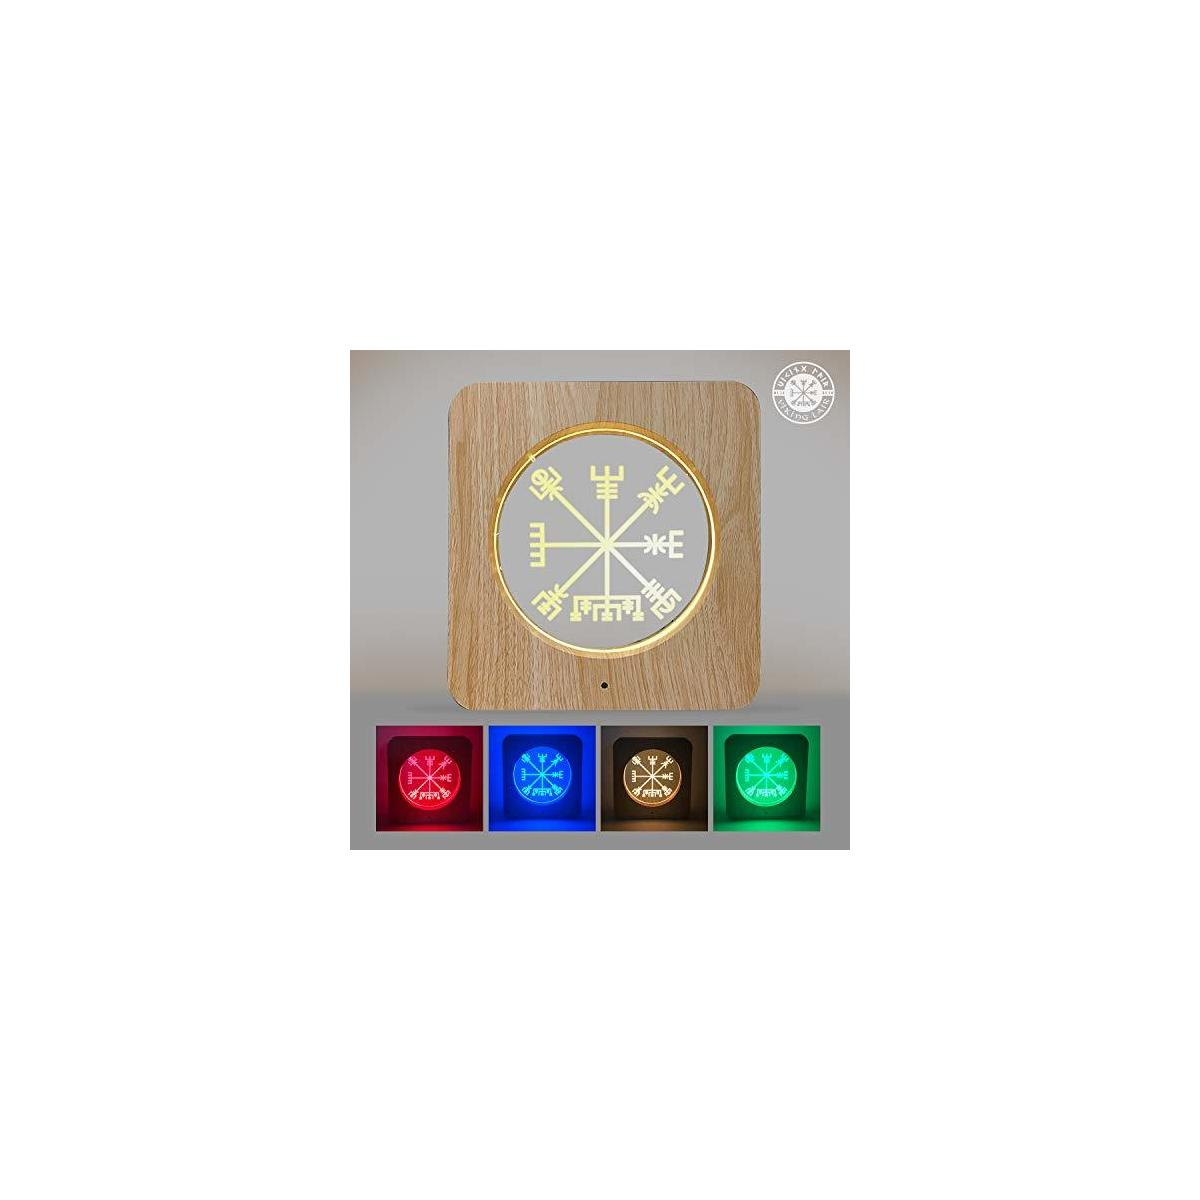 Viking Vegvisir 3D Night Light - Acrylic Table Lamp Wooden Frame Decor with 7 Colors Change Optical Illusion Touch & Remote Control - Bedside LED Nightlight for Kids, Boys & Girls (Vegvisir)